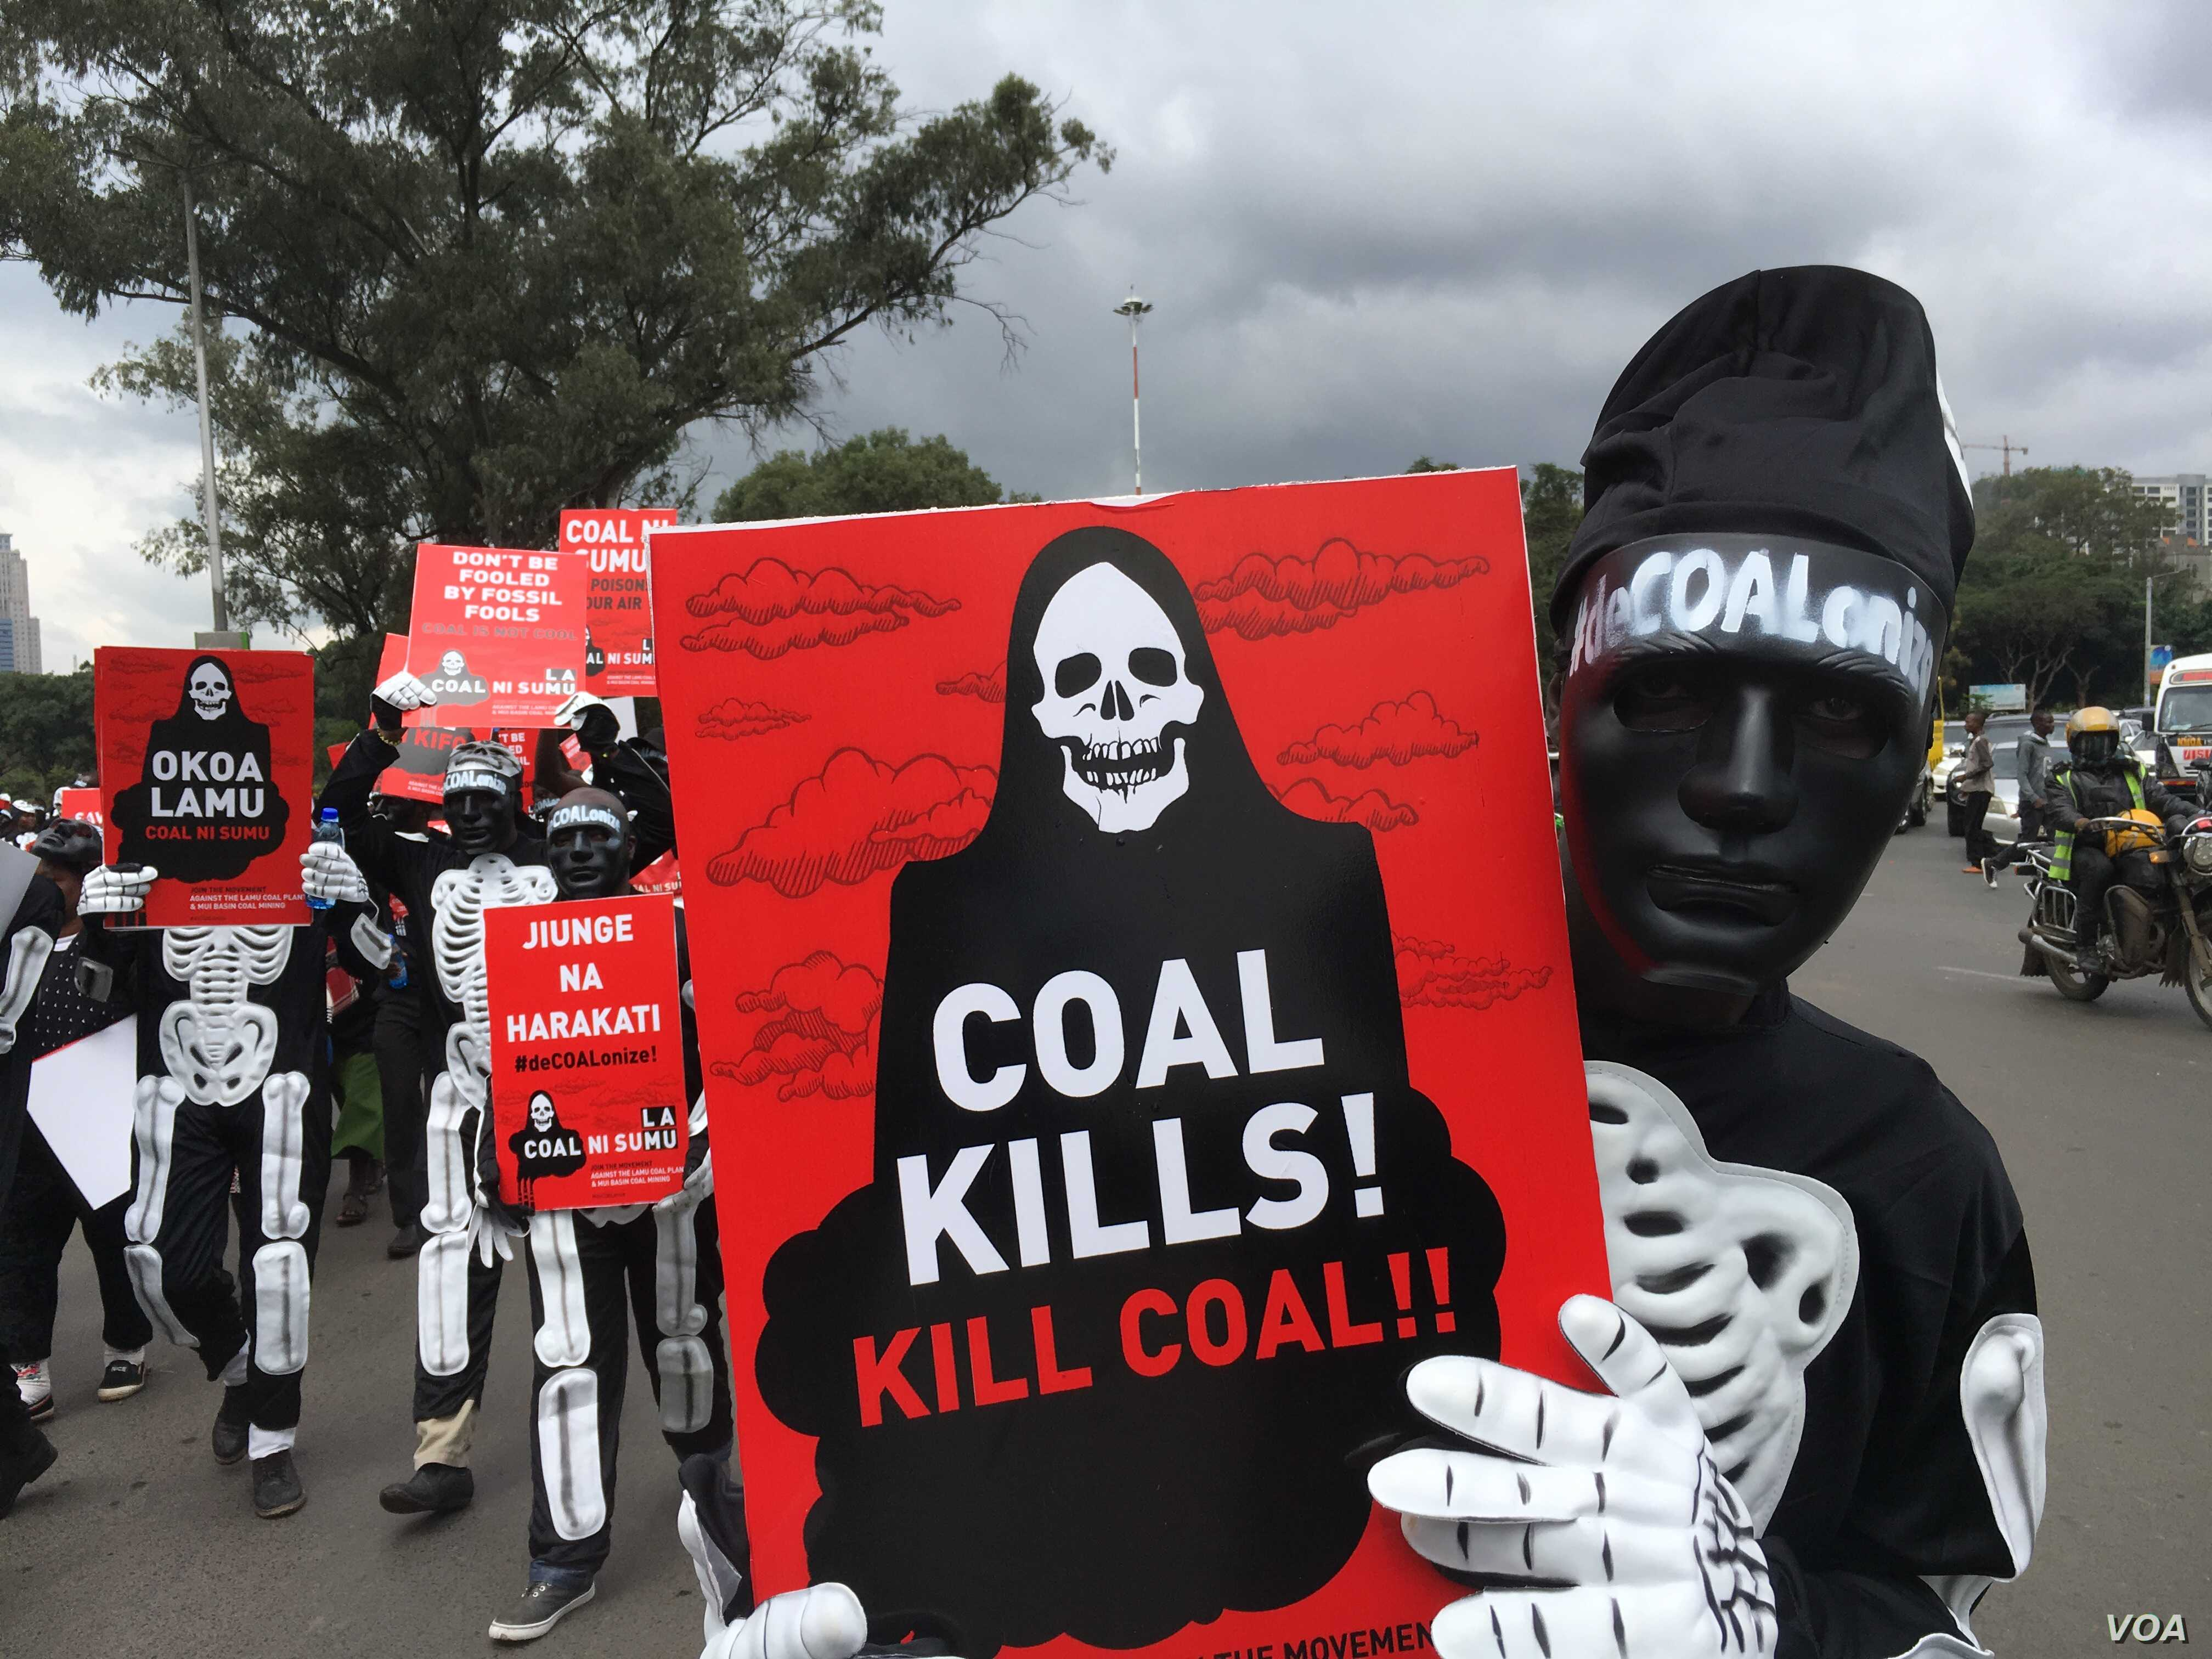 At least 100 protesters, some dressed in skeleton costumes, rally in the streets of Nairobi, Kenya, June 5, 2018, against government plans to construct a coal power plant in the city of Lamu. (M. Yusuf/VOA)